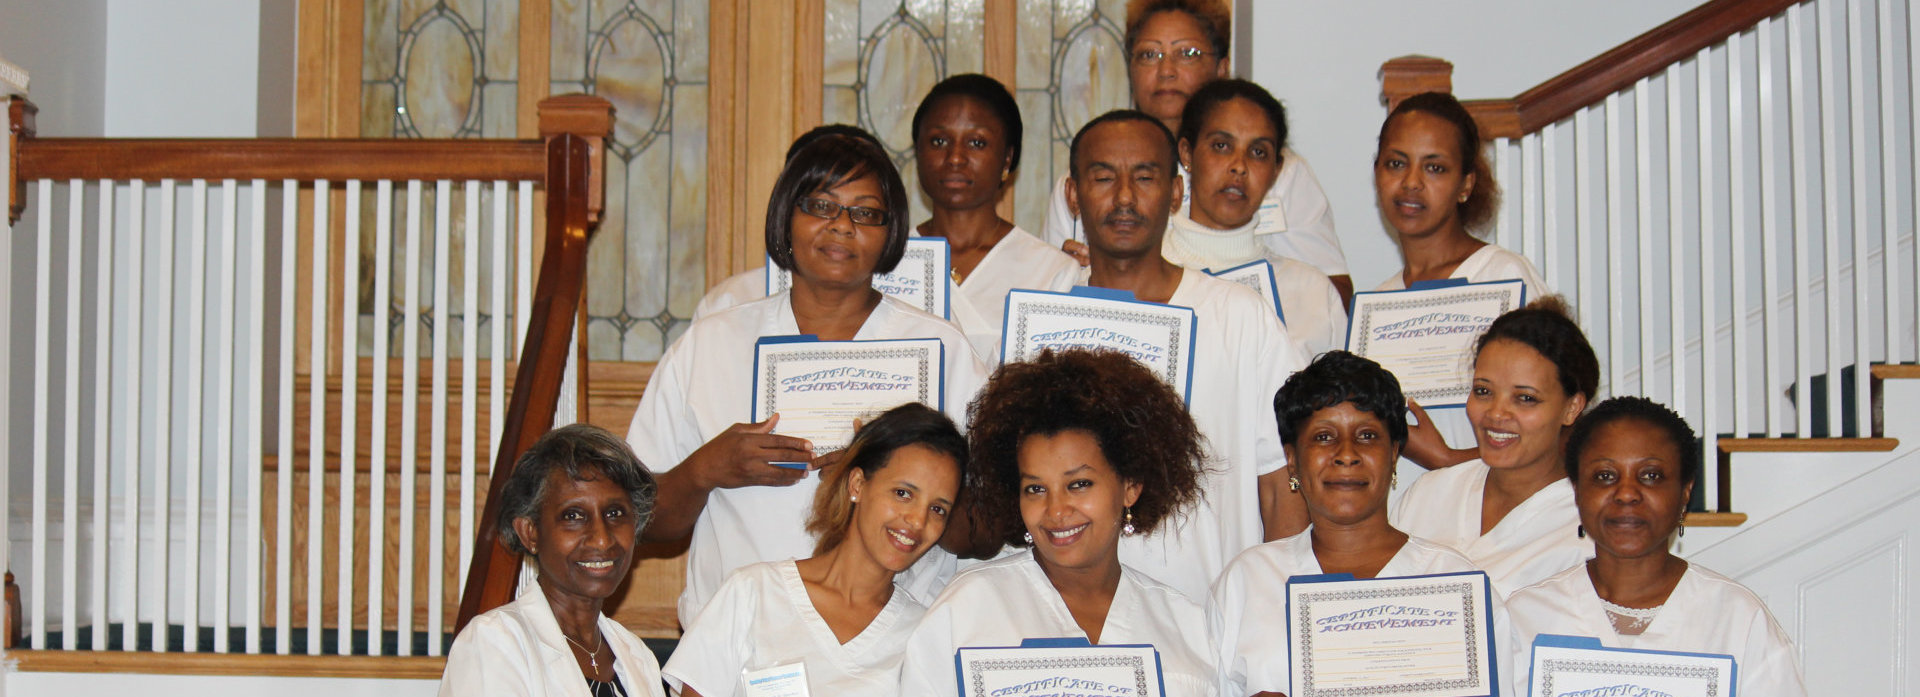 nurses and their certificates